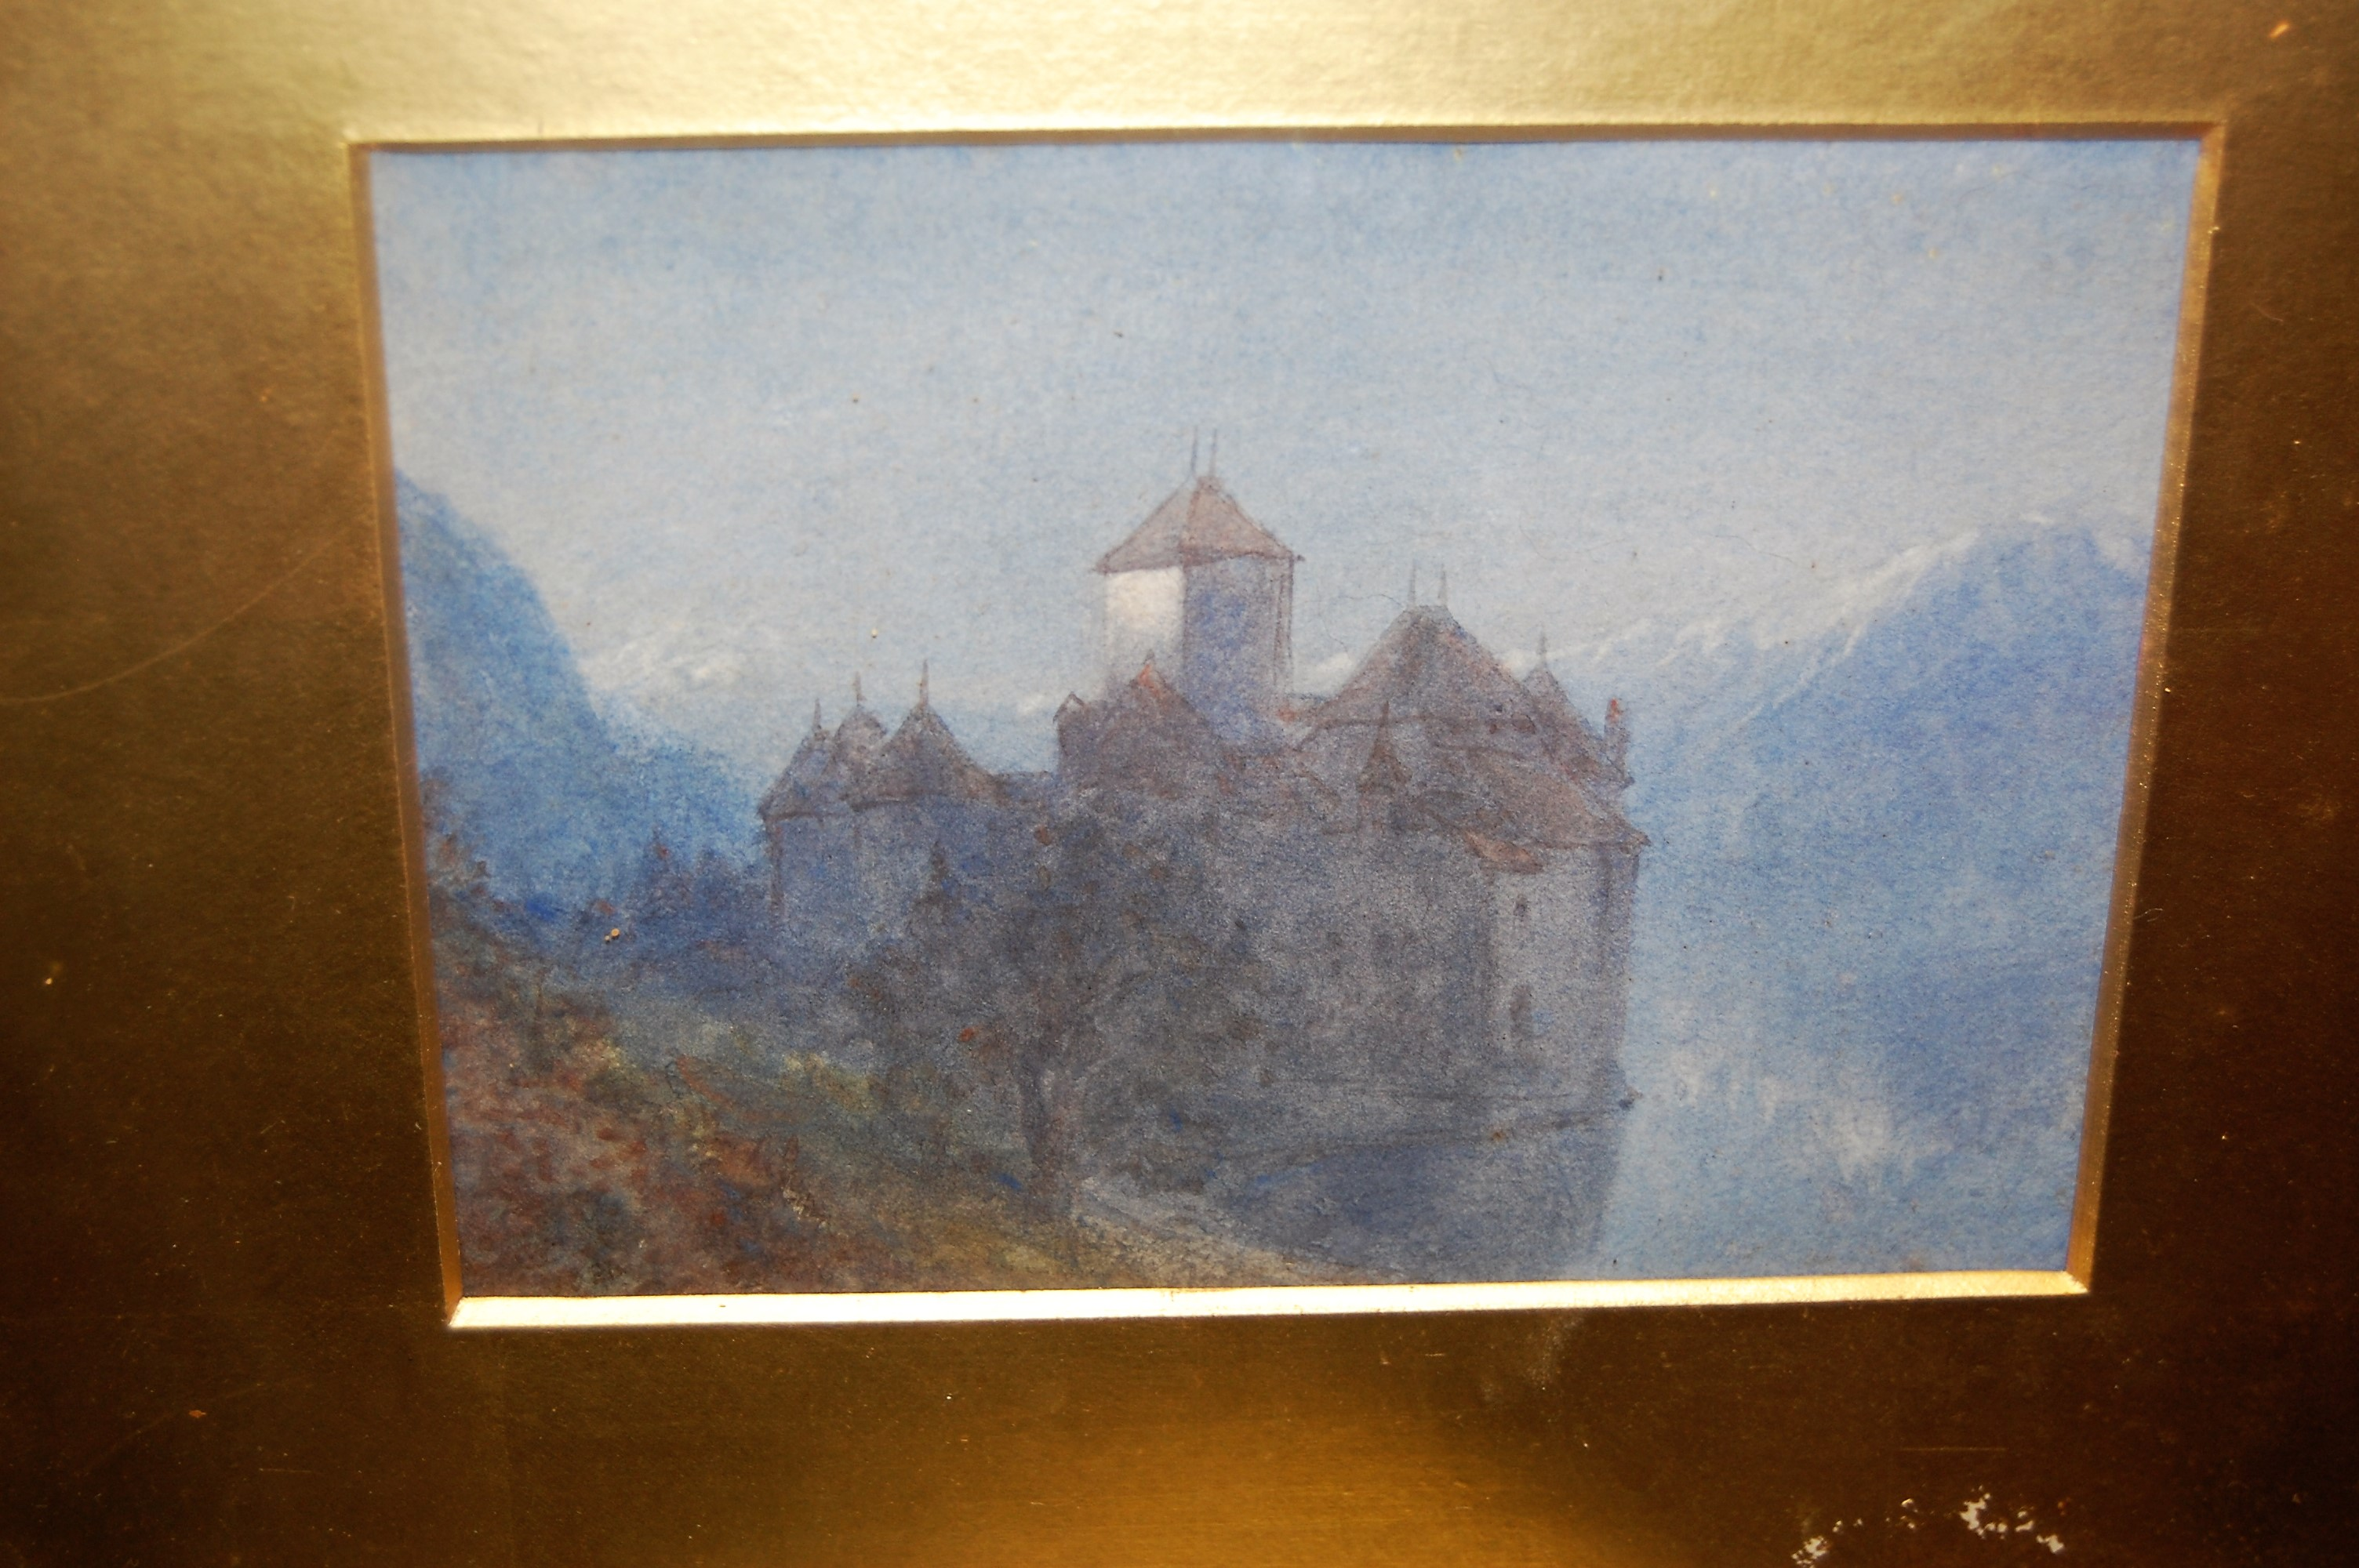 Lot 1045 - W. Collingwood - Moonlit castle, watercolour, 13 x 18cm; and a faux mahogany framed oval wall mirror